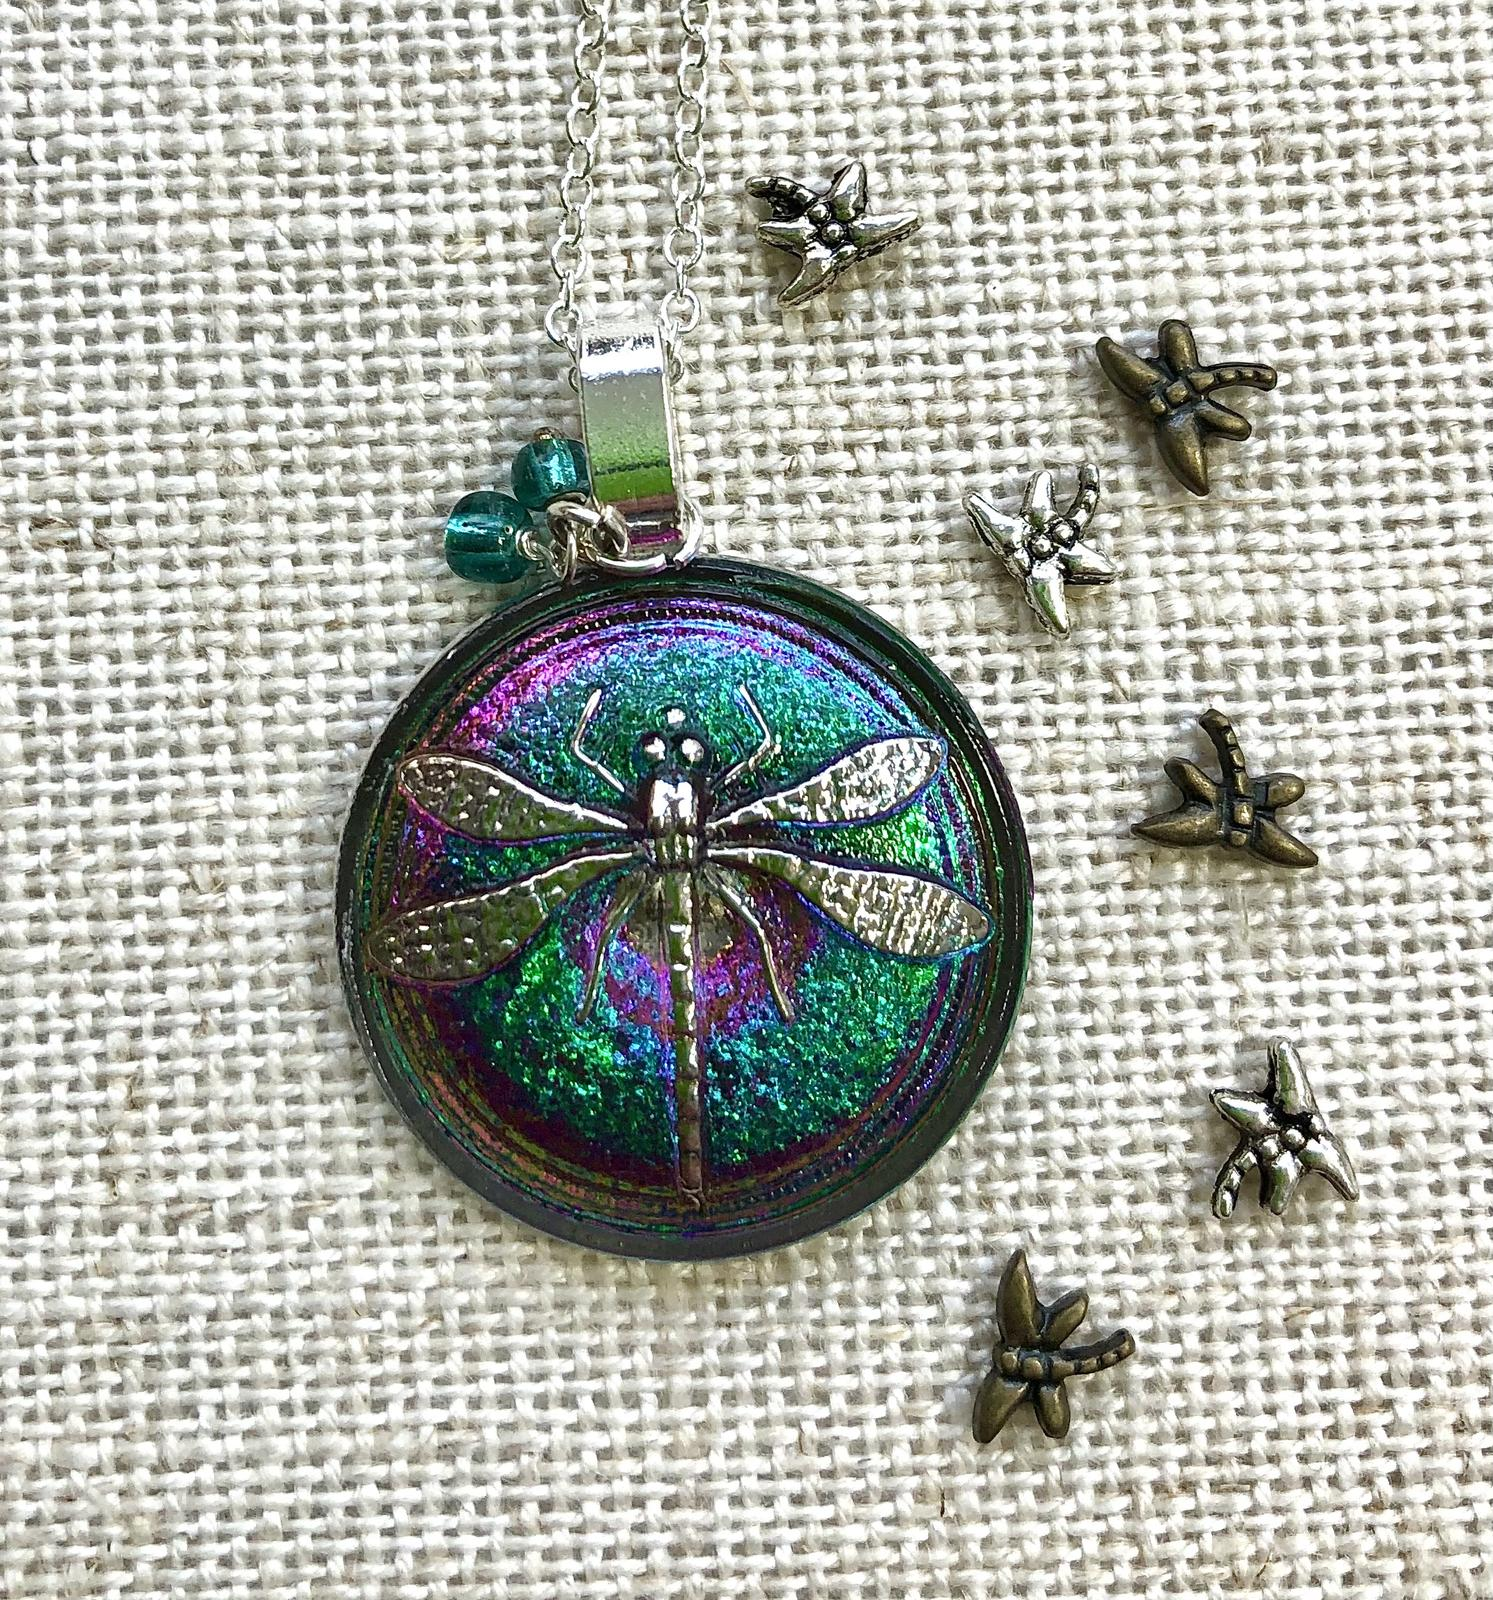 Dragonfly in Glass pendant